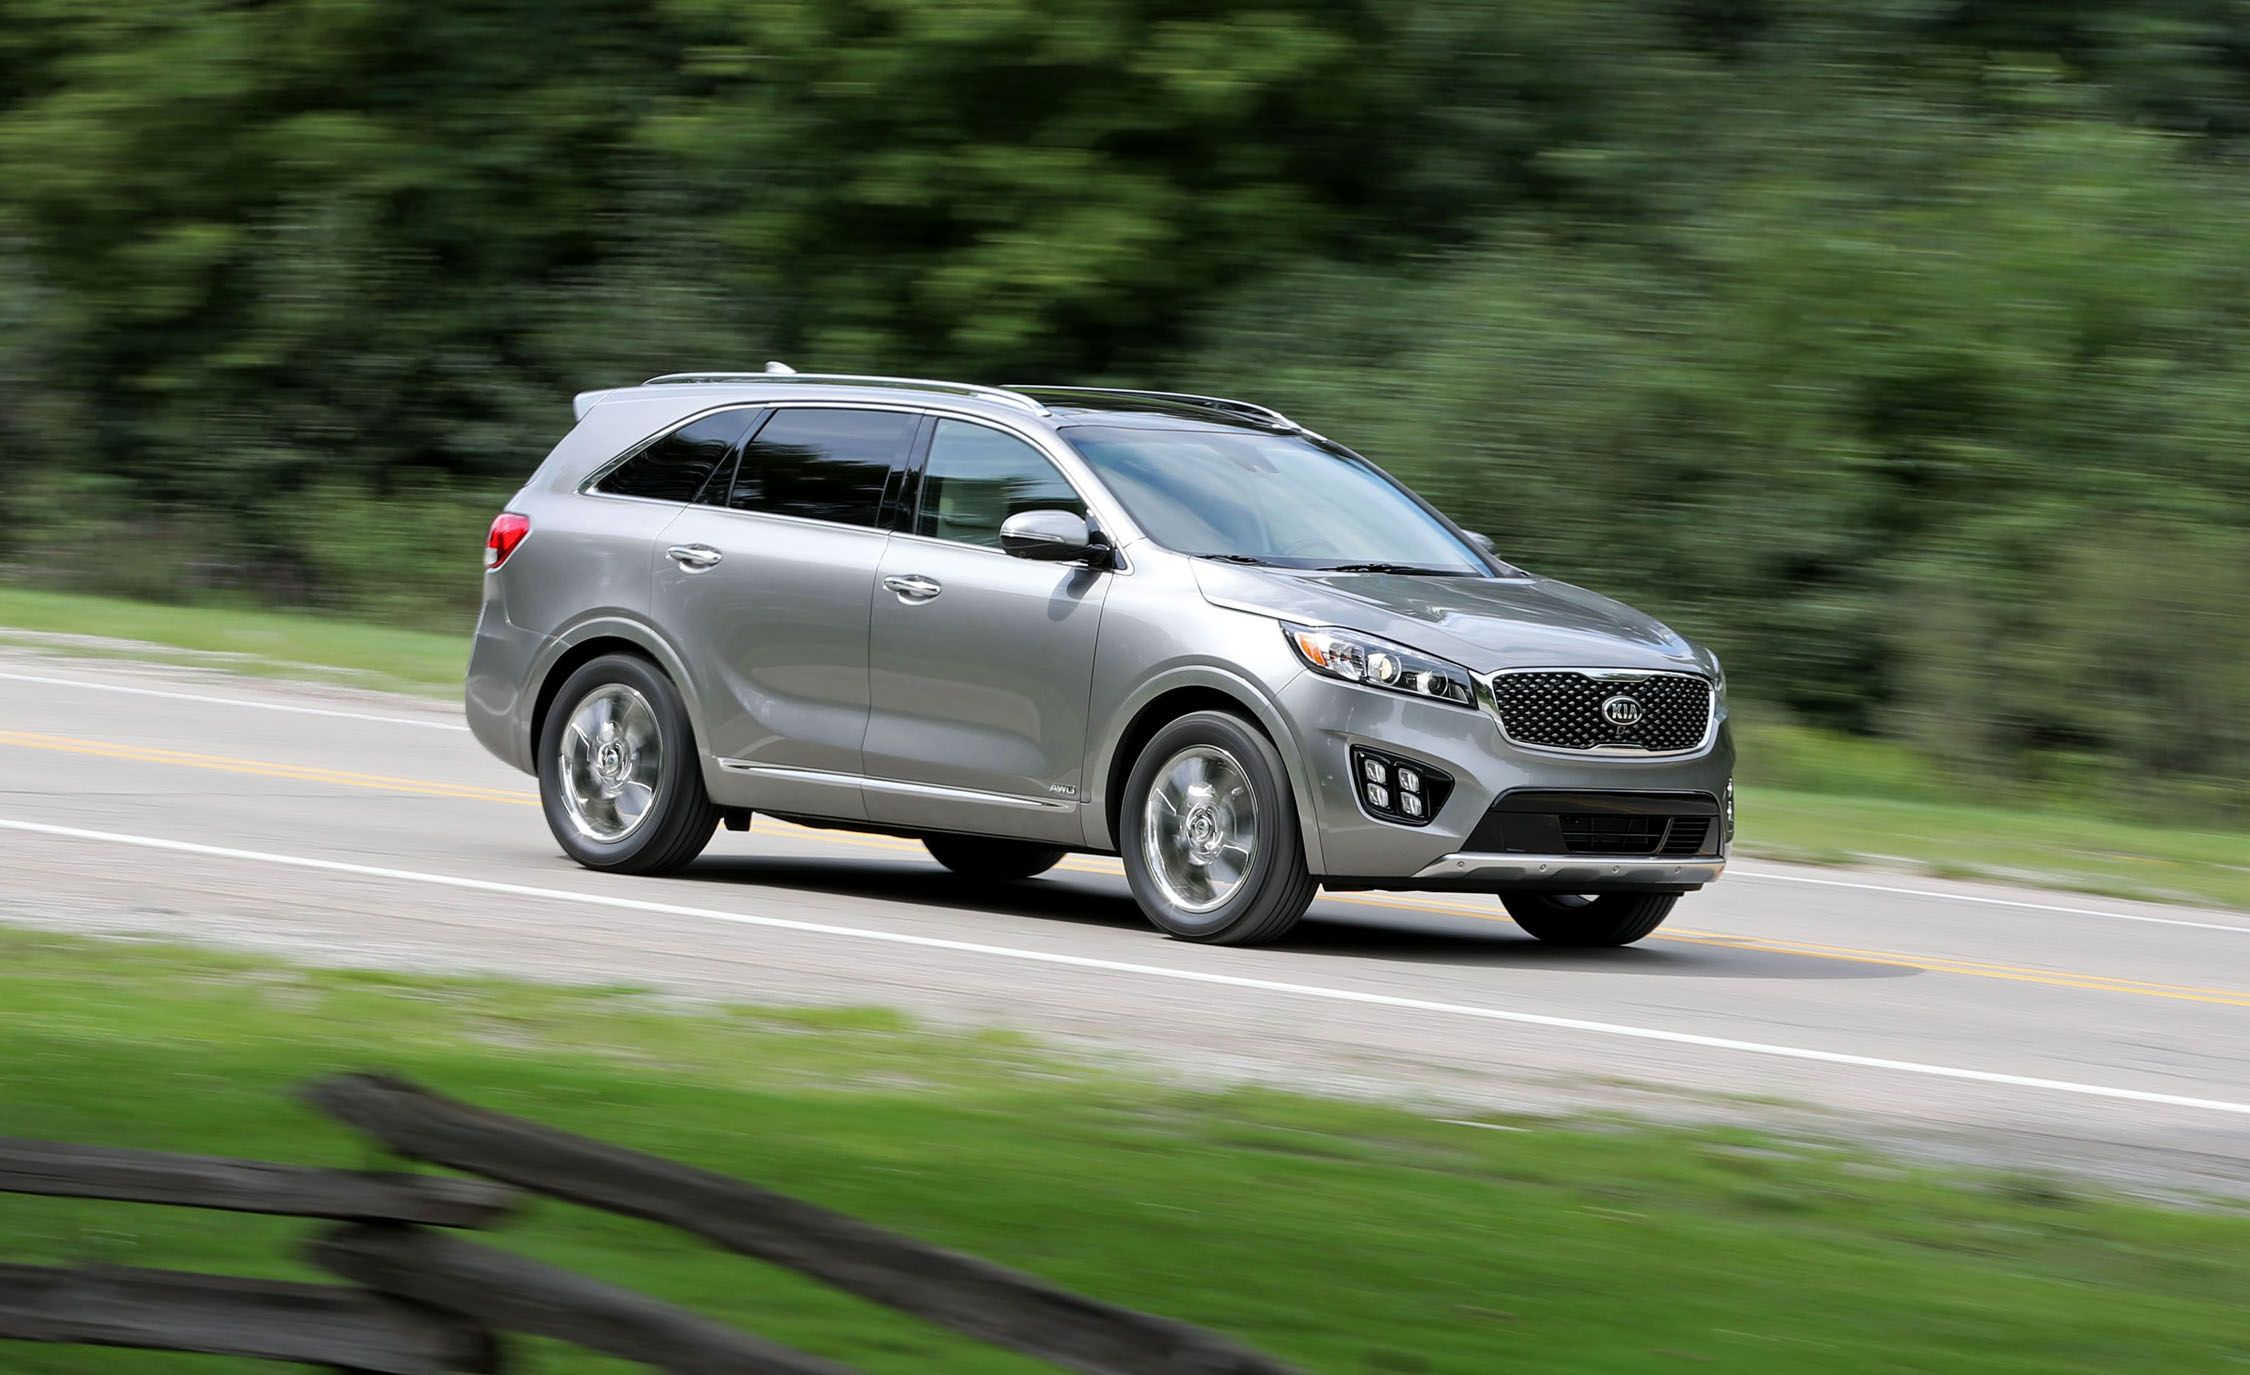 My Kia Performance >> 2018 Kia Sorento | In-Depth Model Review | Car and Driver